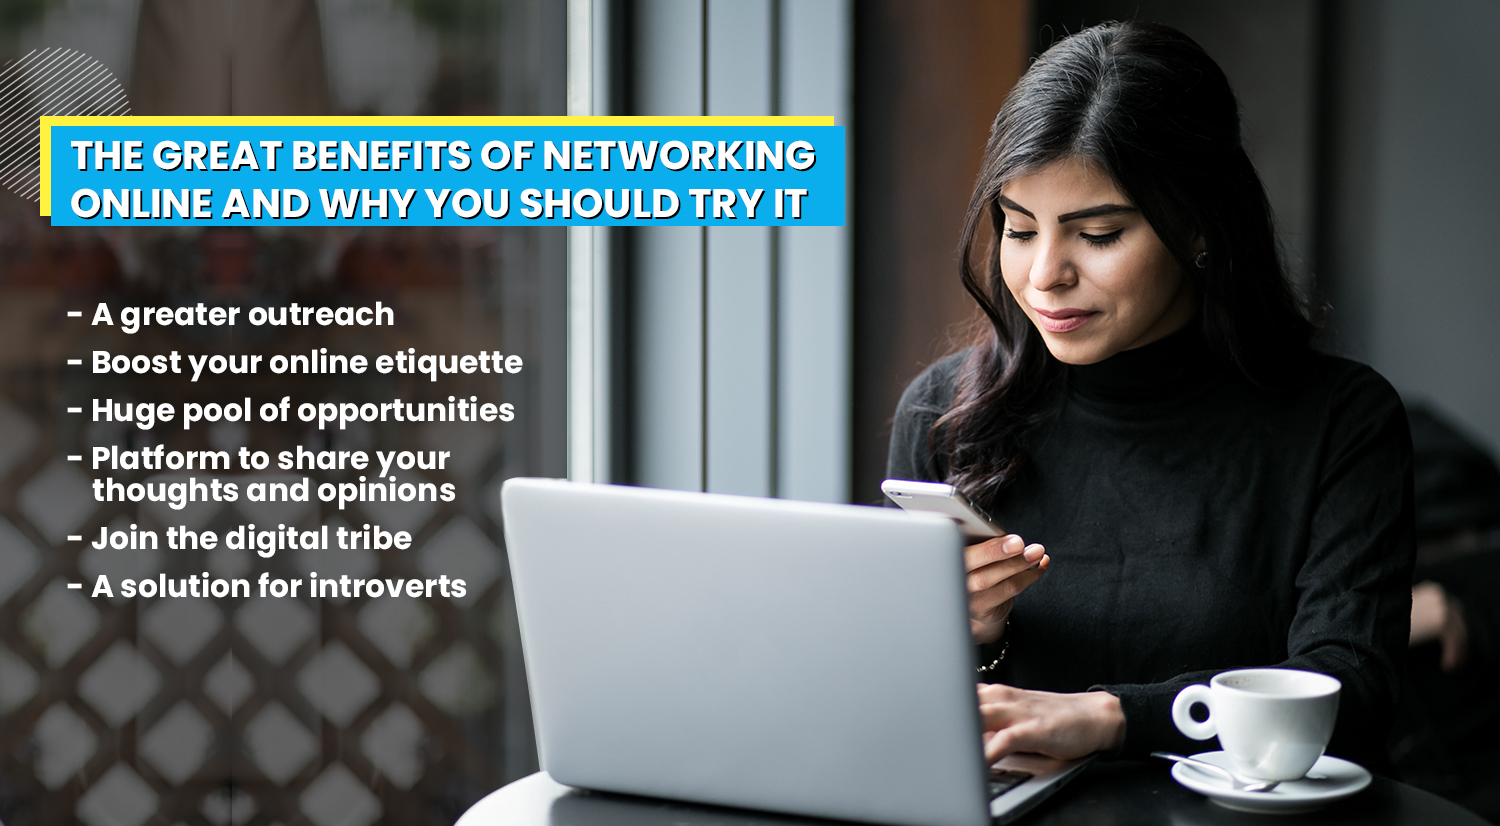 the great benefits of online networking and why you should try it